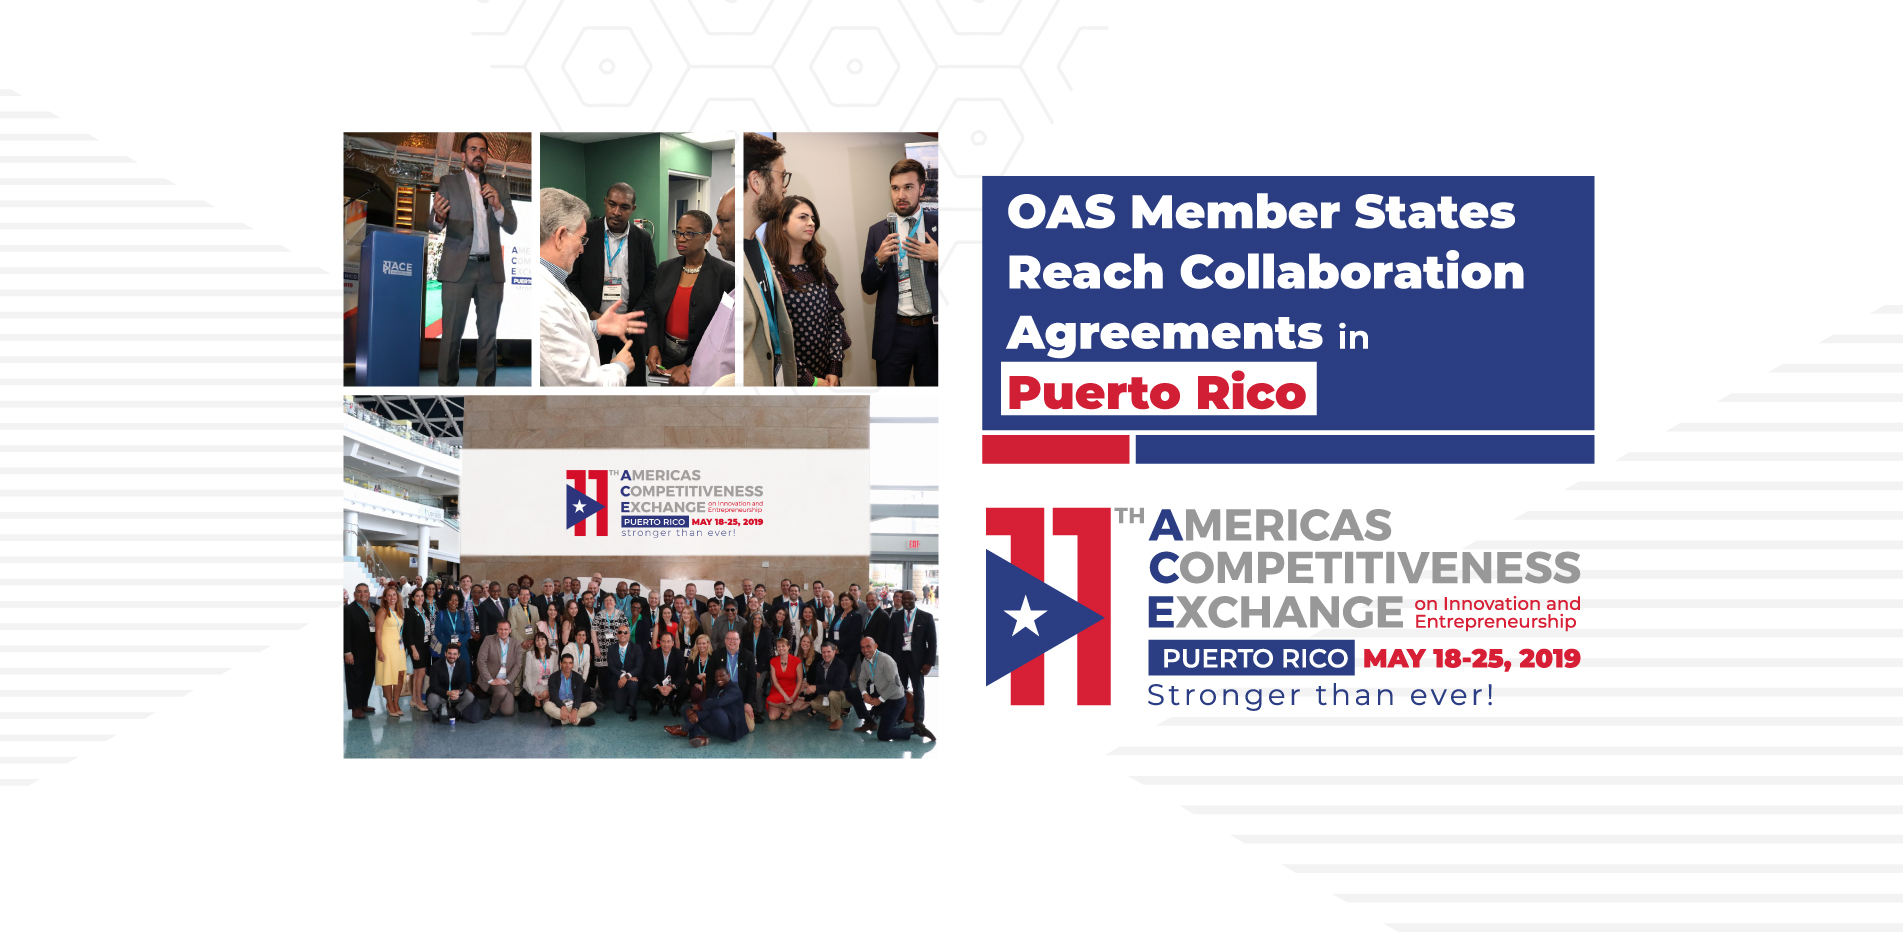 OAS Member States Reach Collaboration Agreements in Puerto Rico